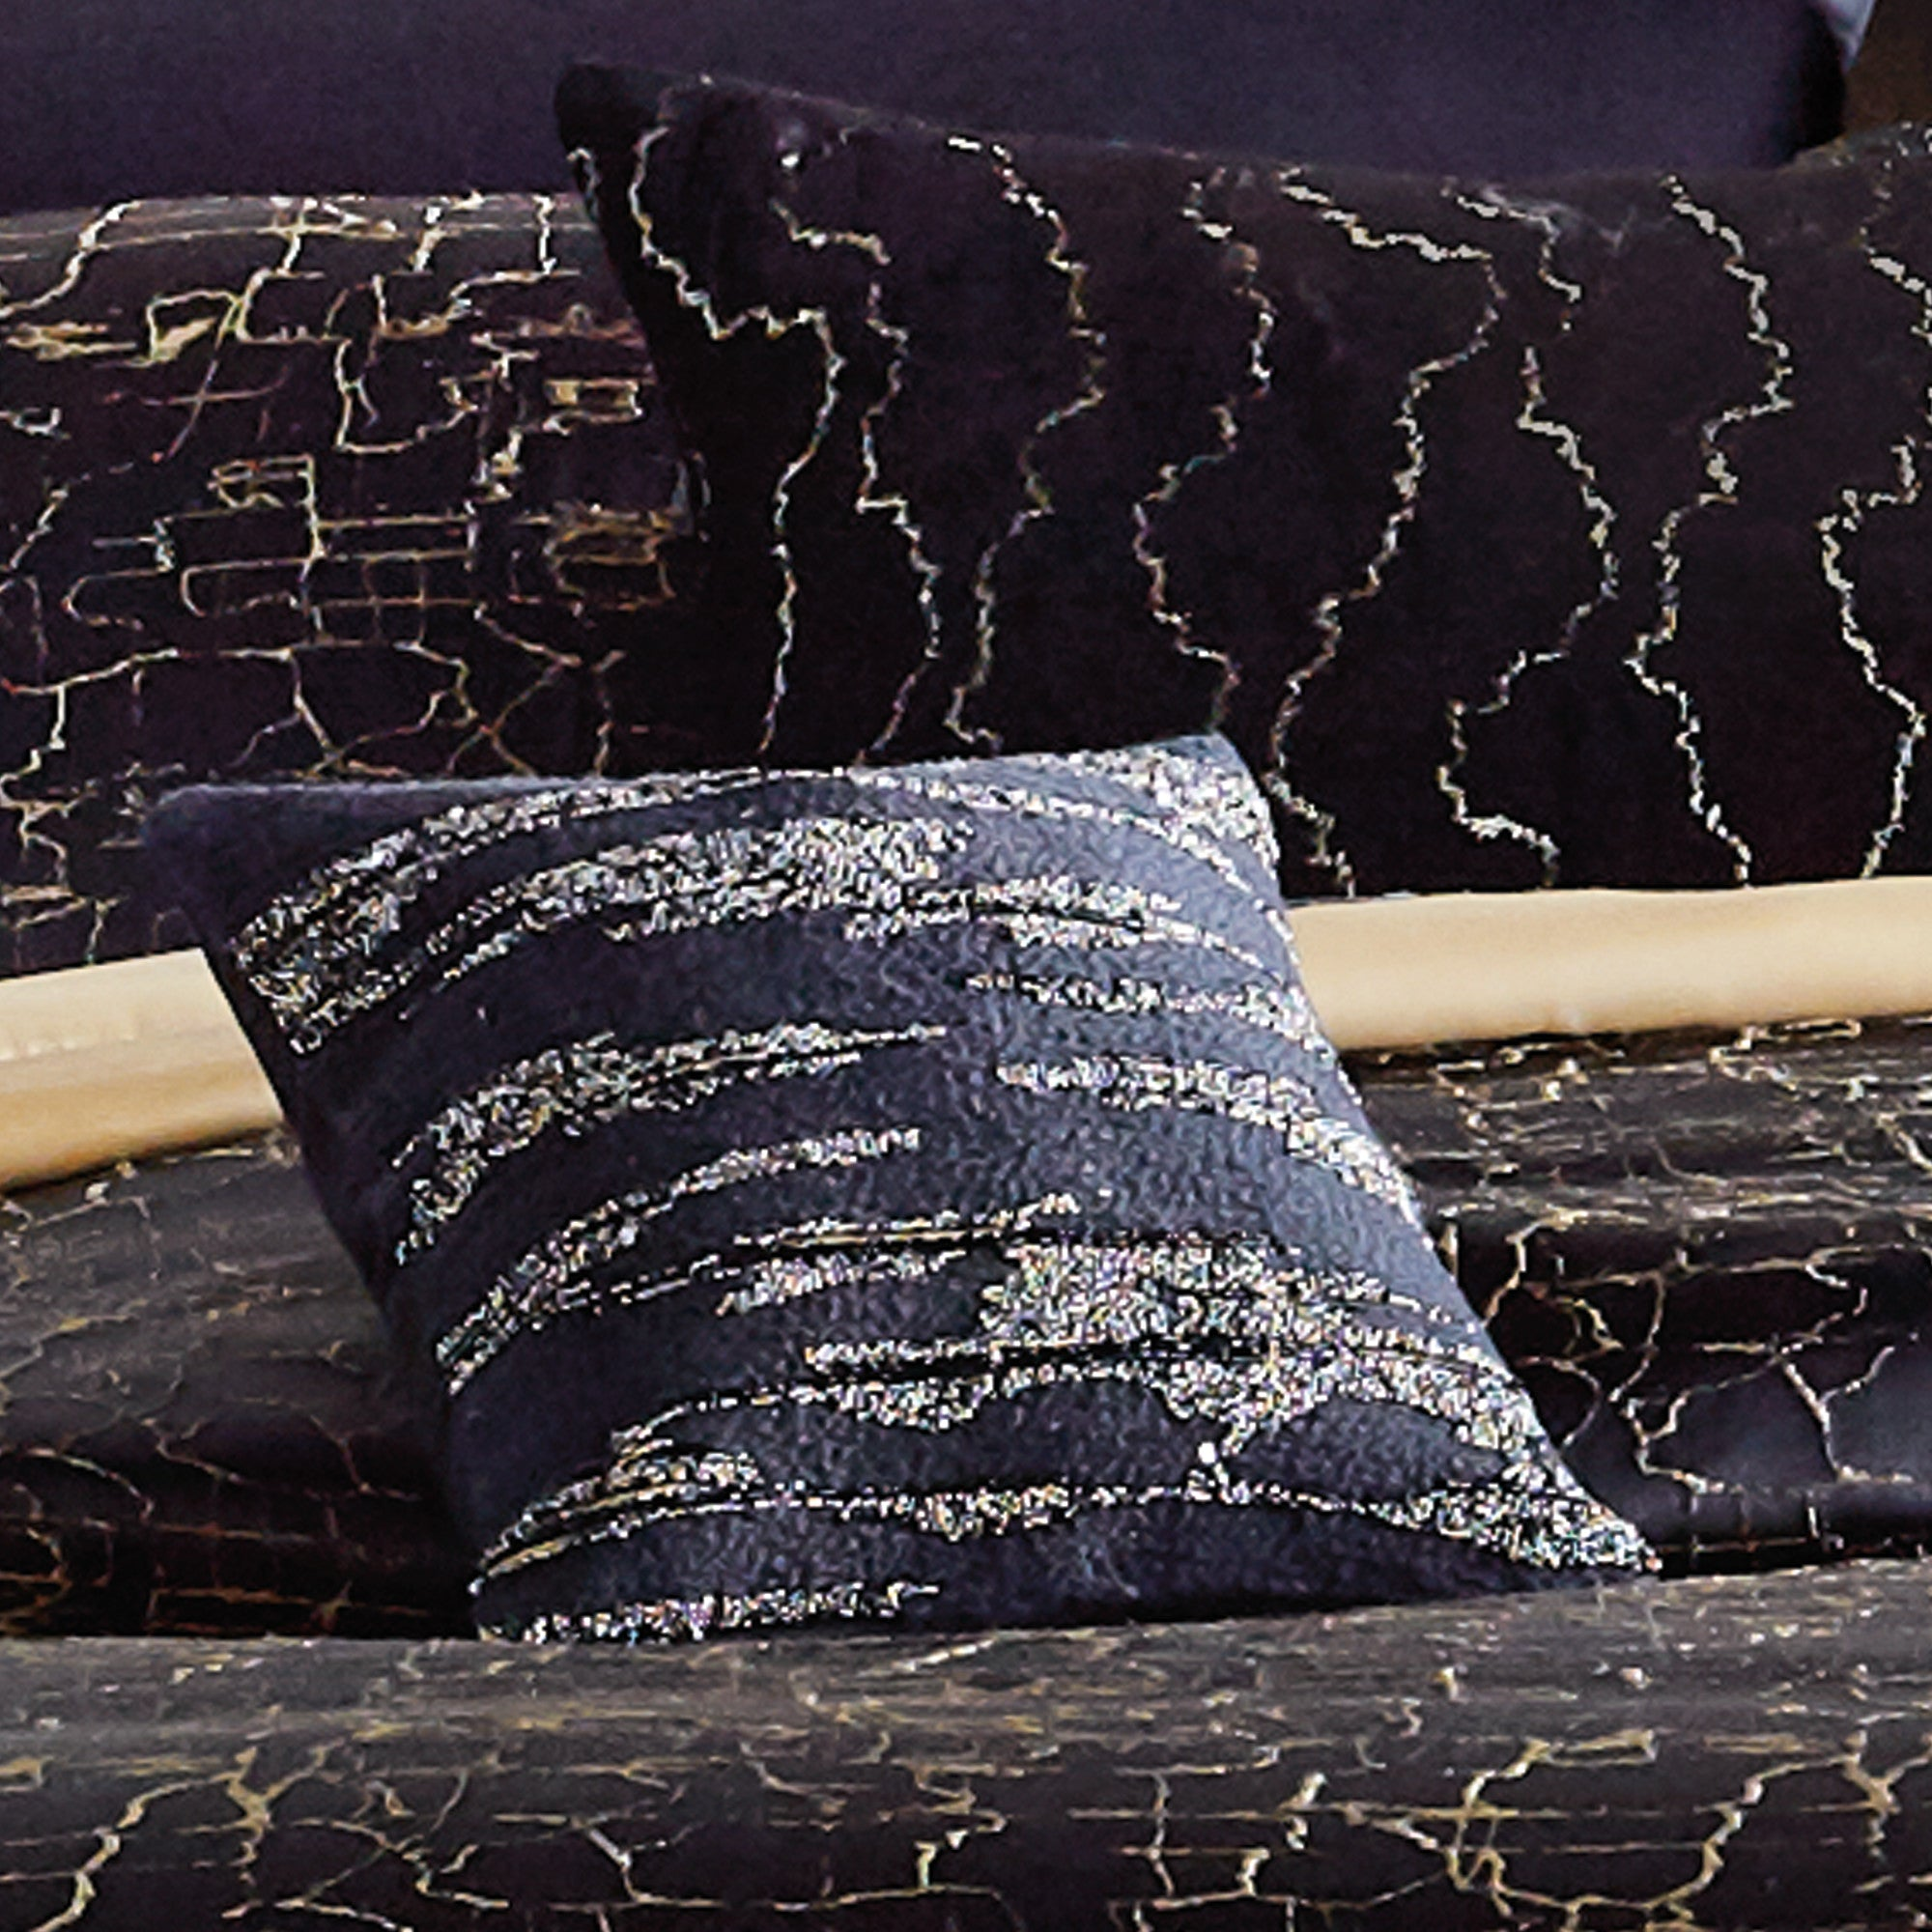 "Onyx Black Throw Pillow 12"" x 12"" - DKNY Home Throw Pillows By CHF Industries, Inc."